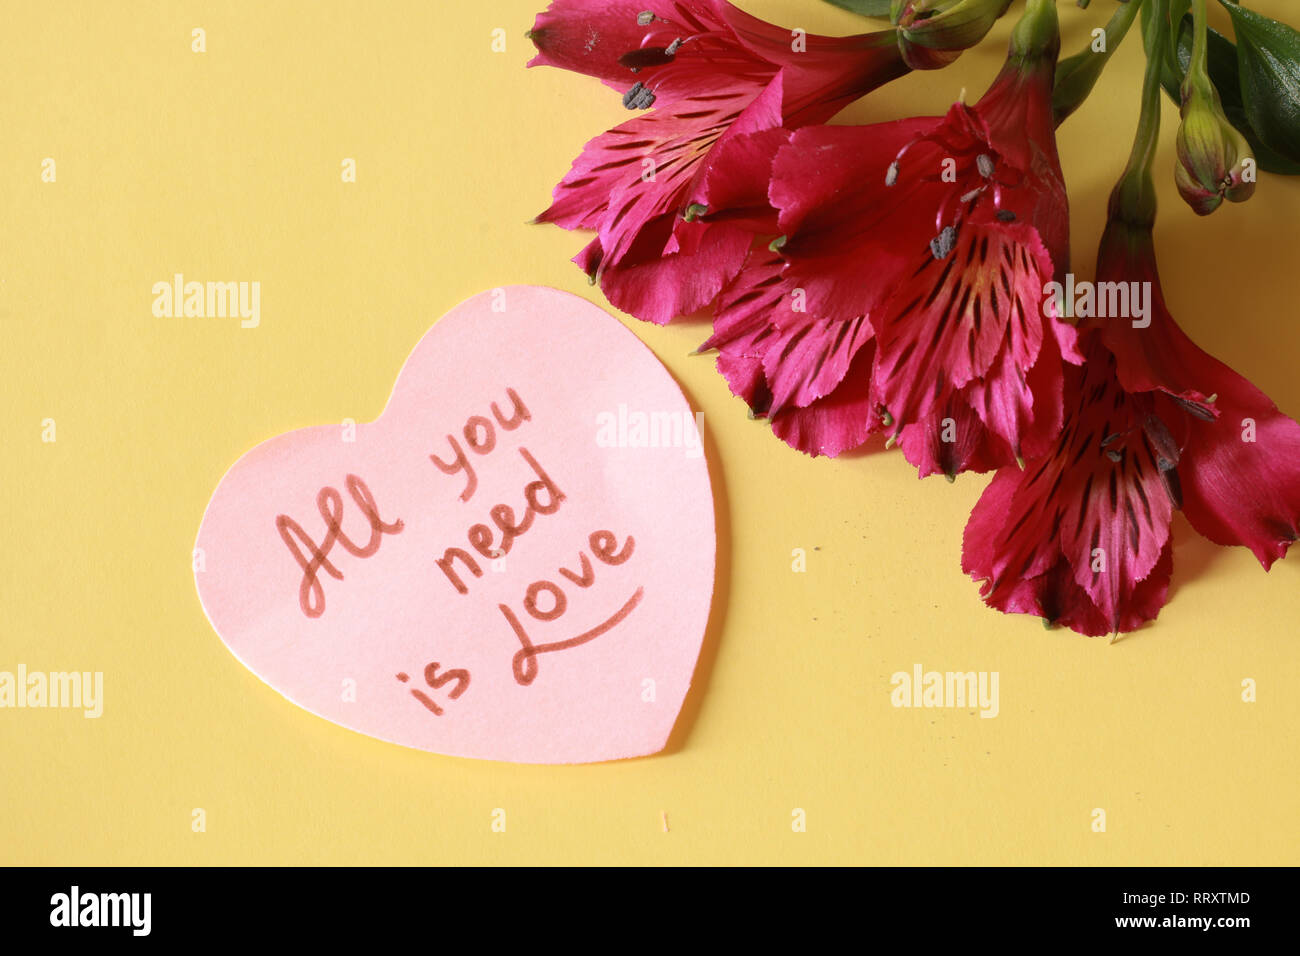 All you need is Love Stock Photo